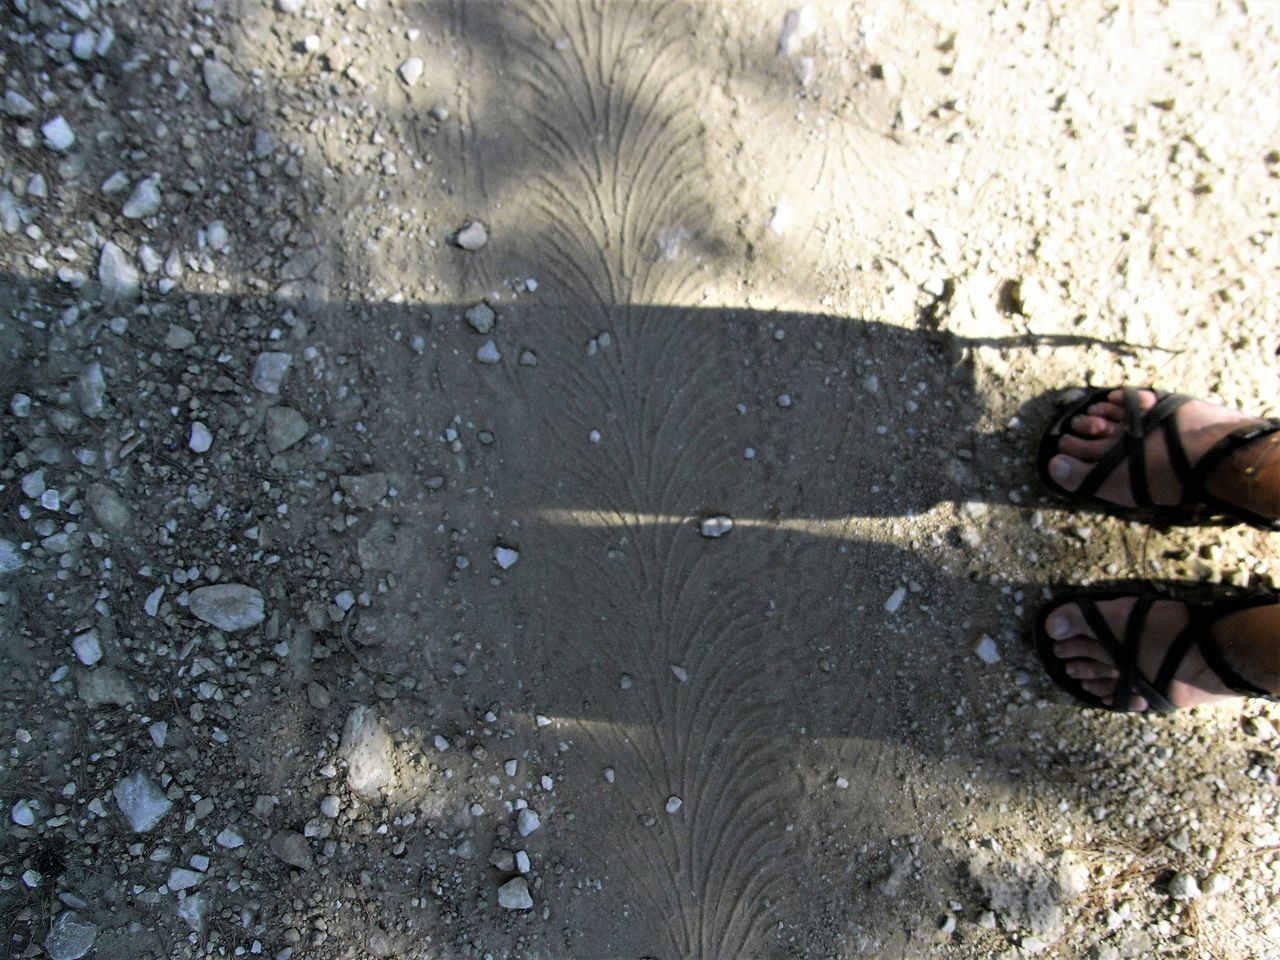 Adult Barefoot Day High Angle View Human Body Part Human Foot Human Leg Lifestyles Low Section Nature One Person Outdoors Real People Sand Shadow Standing Sunlight